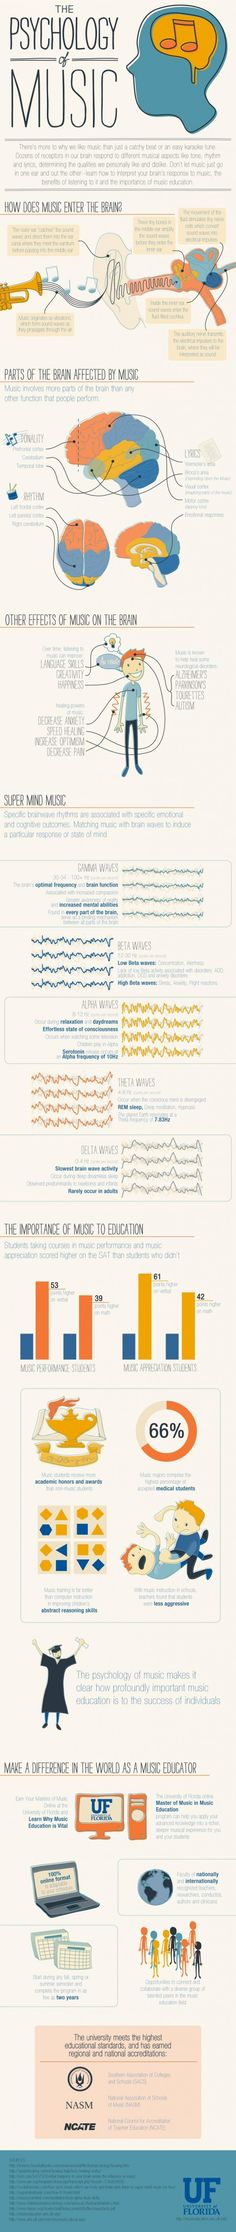 The Psychology of #Music